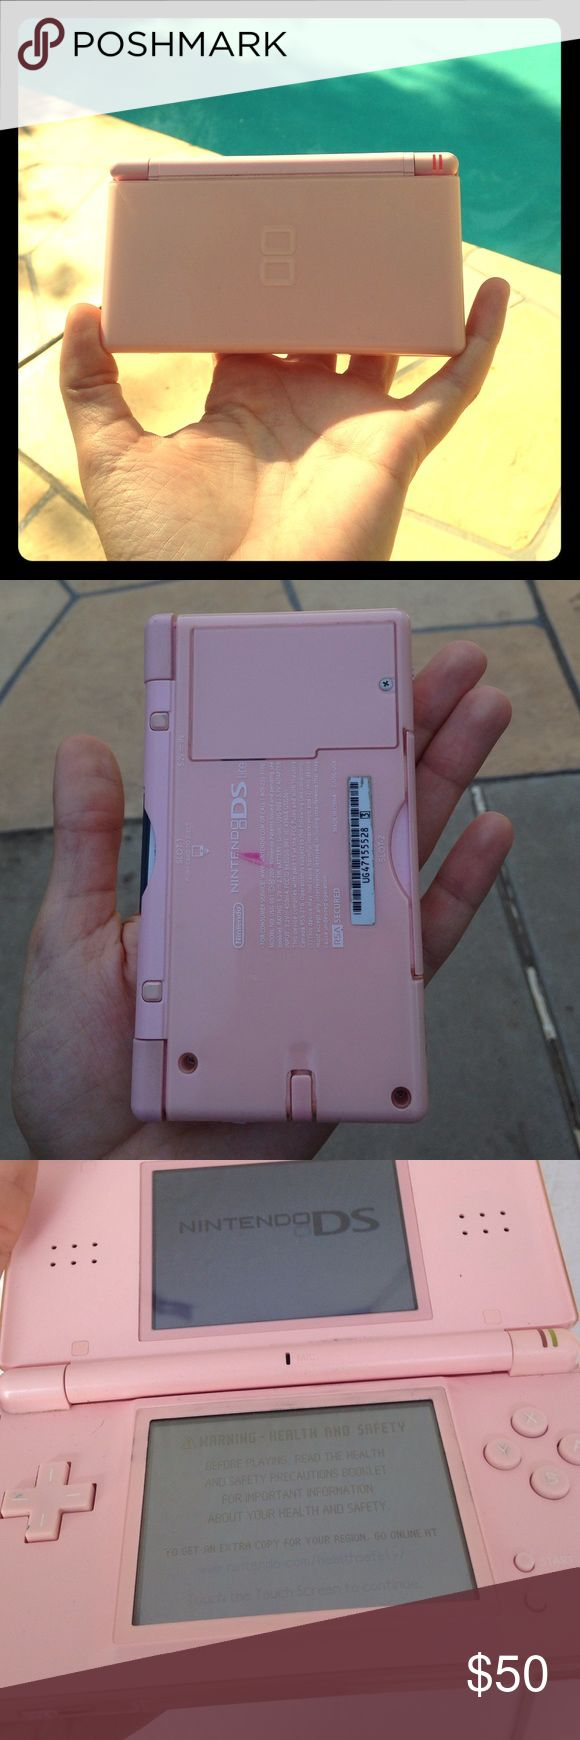 Pink Nintendo Ds Lite In good condition, just the pink stain on the back as shown and some dirt in the cracks but still works perfectly! I can include some games in the price, please ask for details if interested! All offers welcome! Nintendo Other